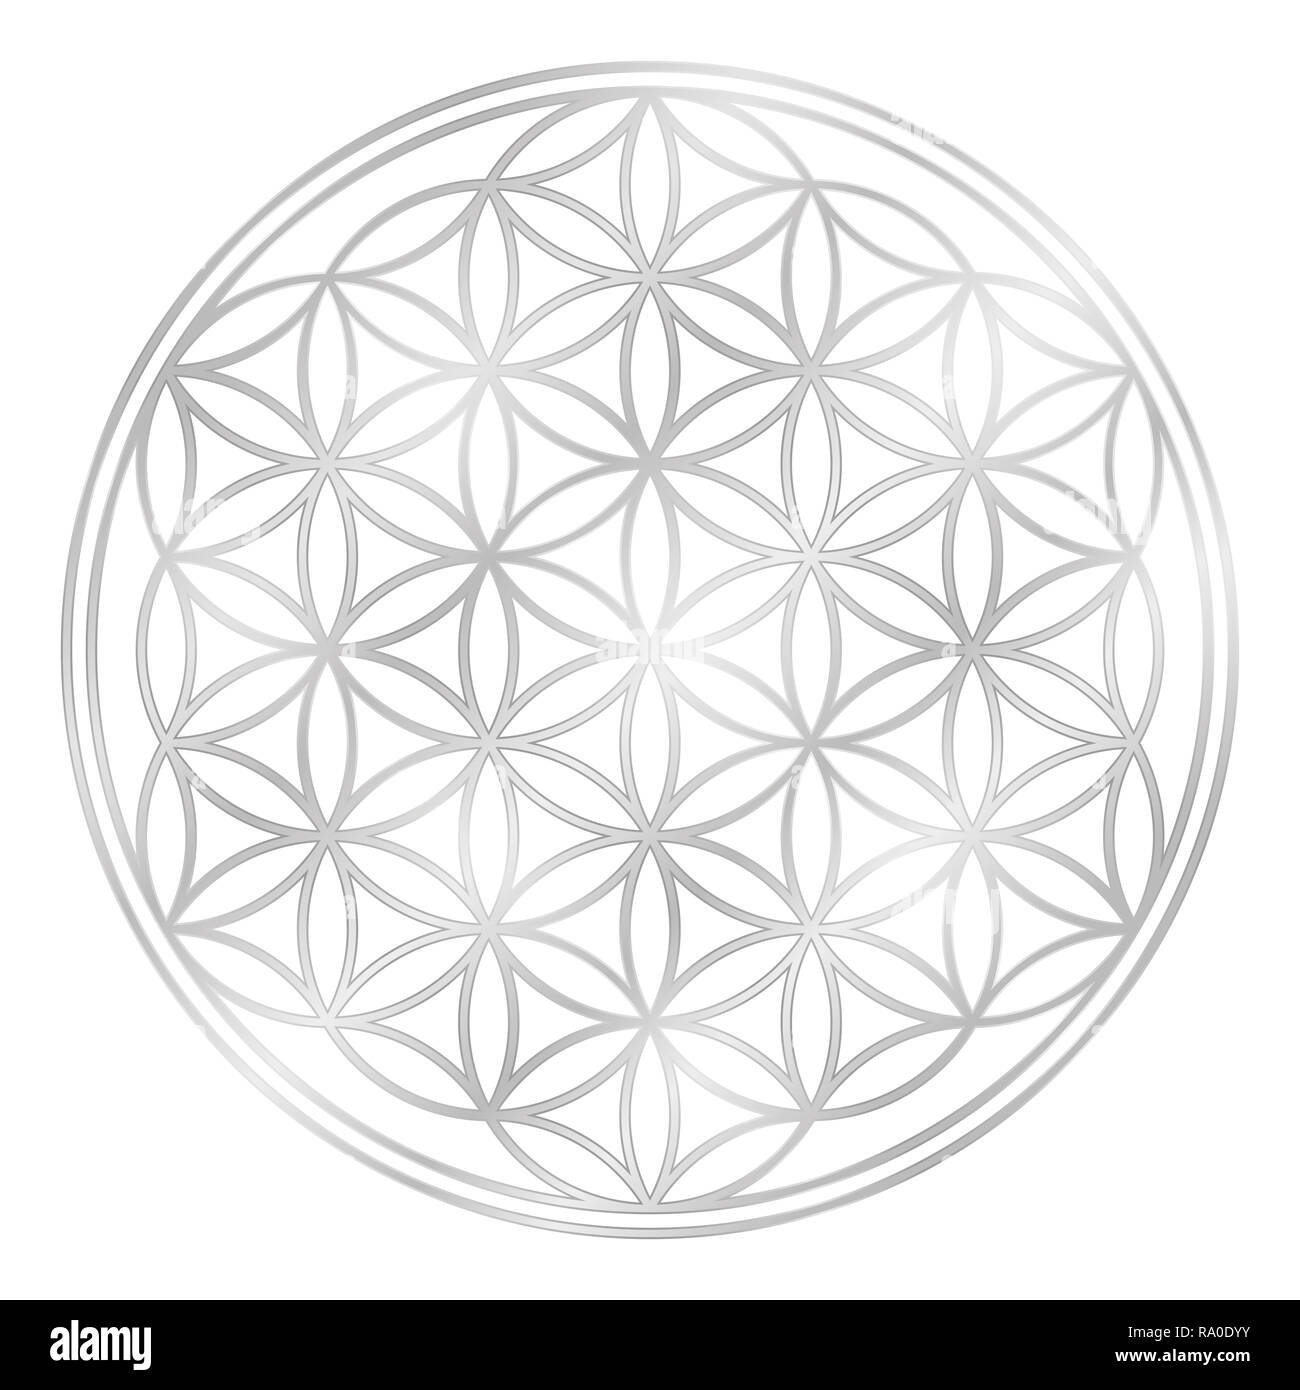 Silver Flower of Life, used for decoration or silver pendant. Geometrical symbol on white background. - Stock Image